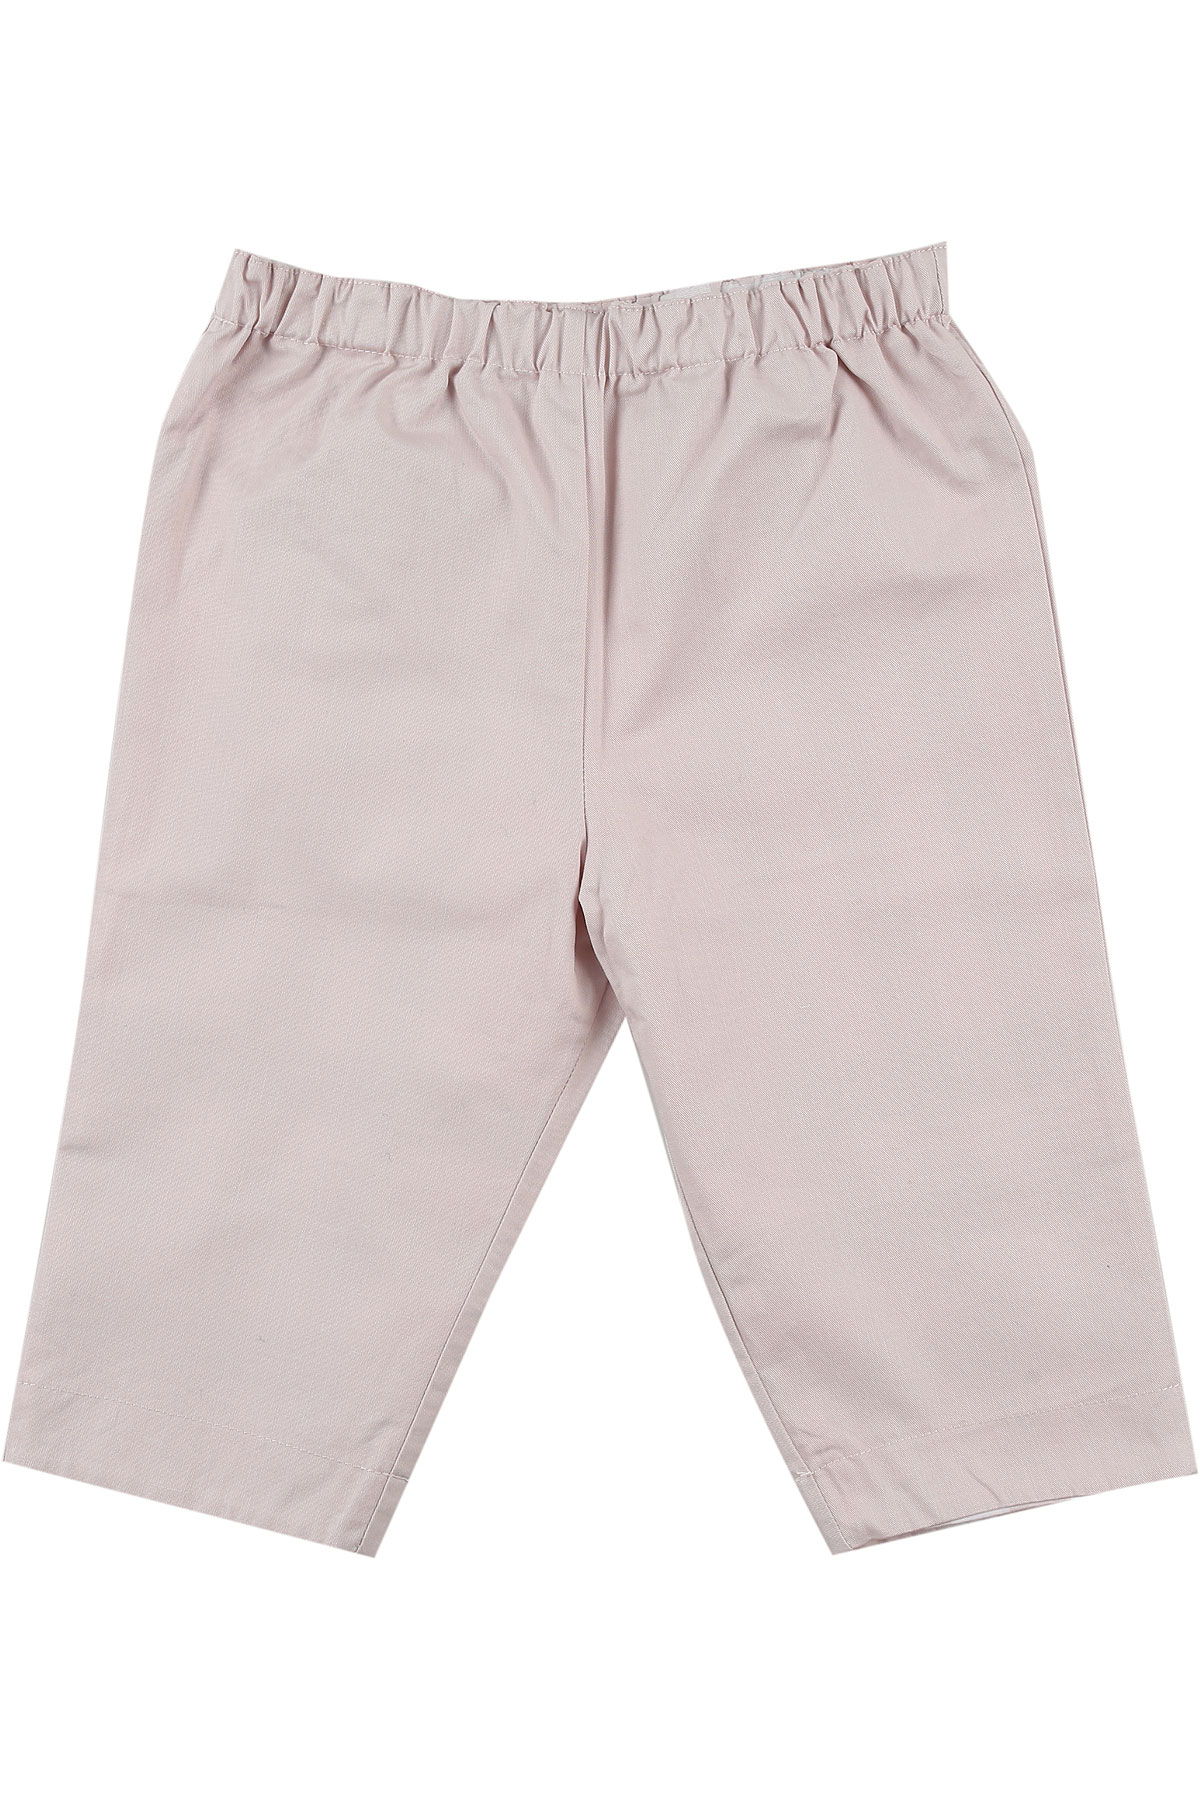 Burberry Baby Pants for Girls On Sale in Outlet, Pale Pink, Cotton, 2019, 3M 6M